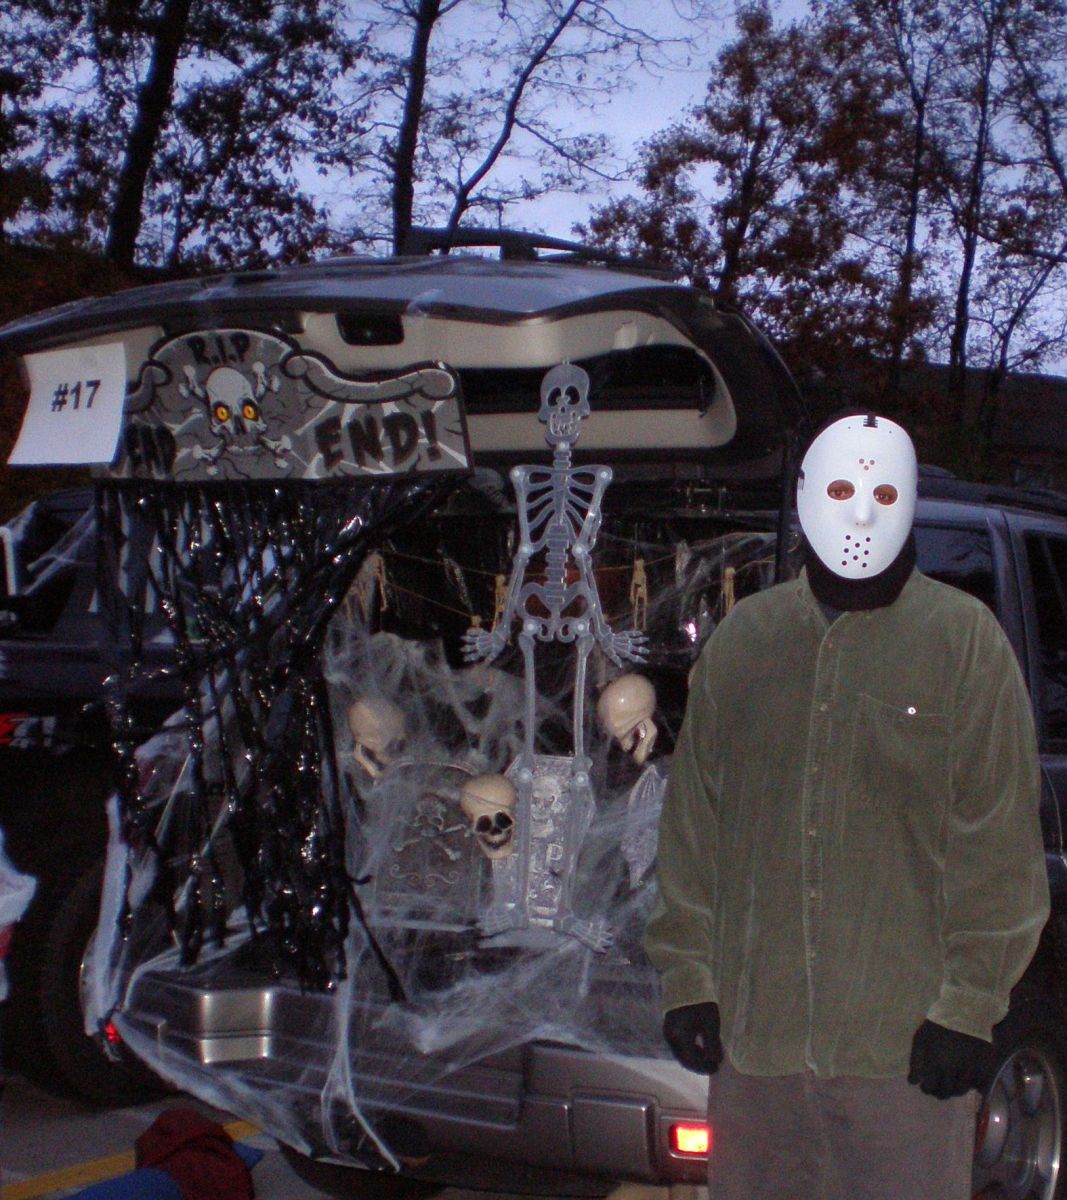 This adult dressed up as Jason Voorhees for Halloween and became a prop in his Trunk or Treat display.